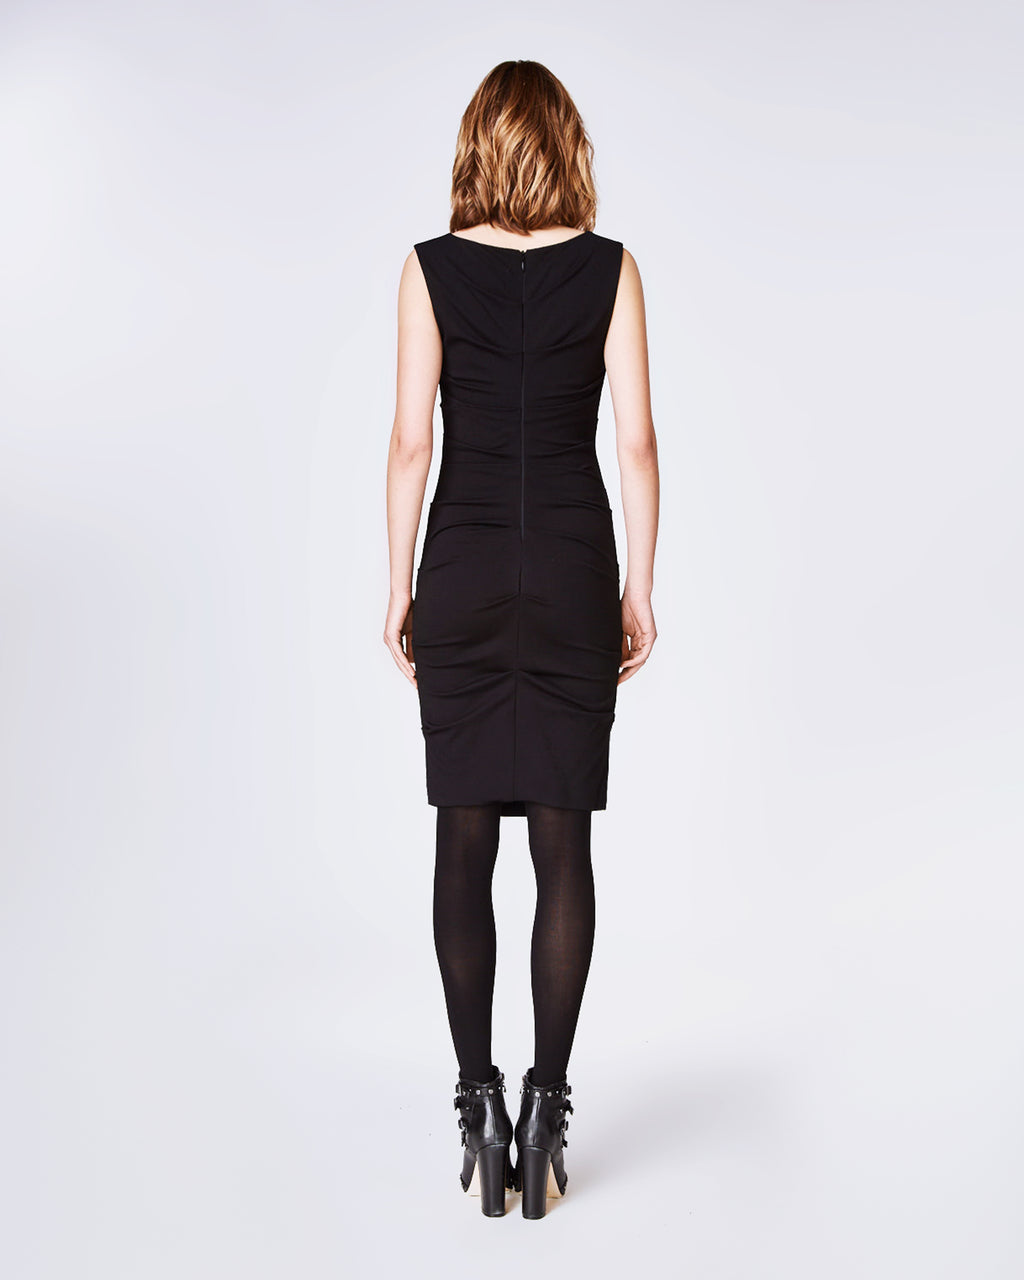 BF0904 - LAUREN PONTE DRESS - dresses - short - Ruched seams detail the body of this boat neck sheath dress. Back zipper closure. Sleeveless.